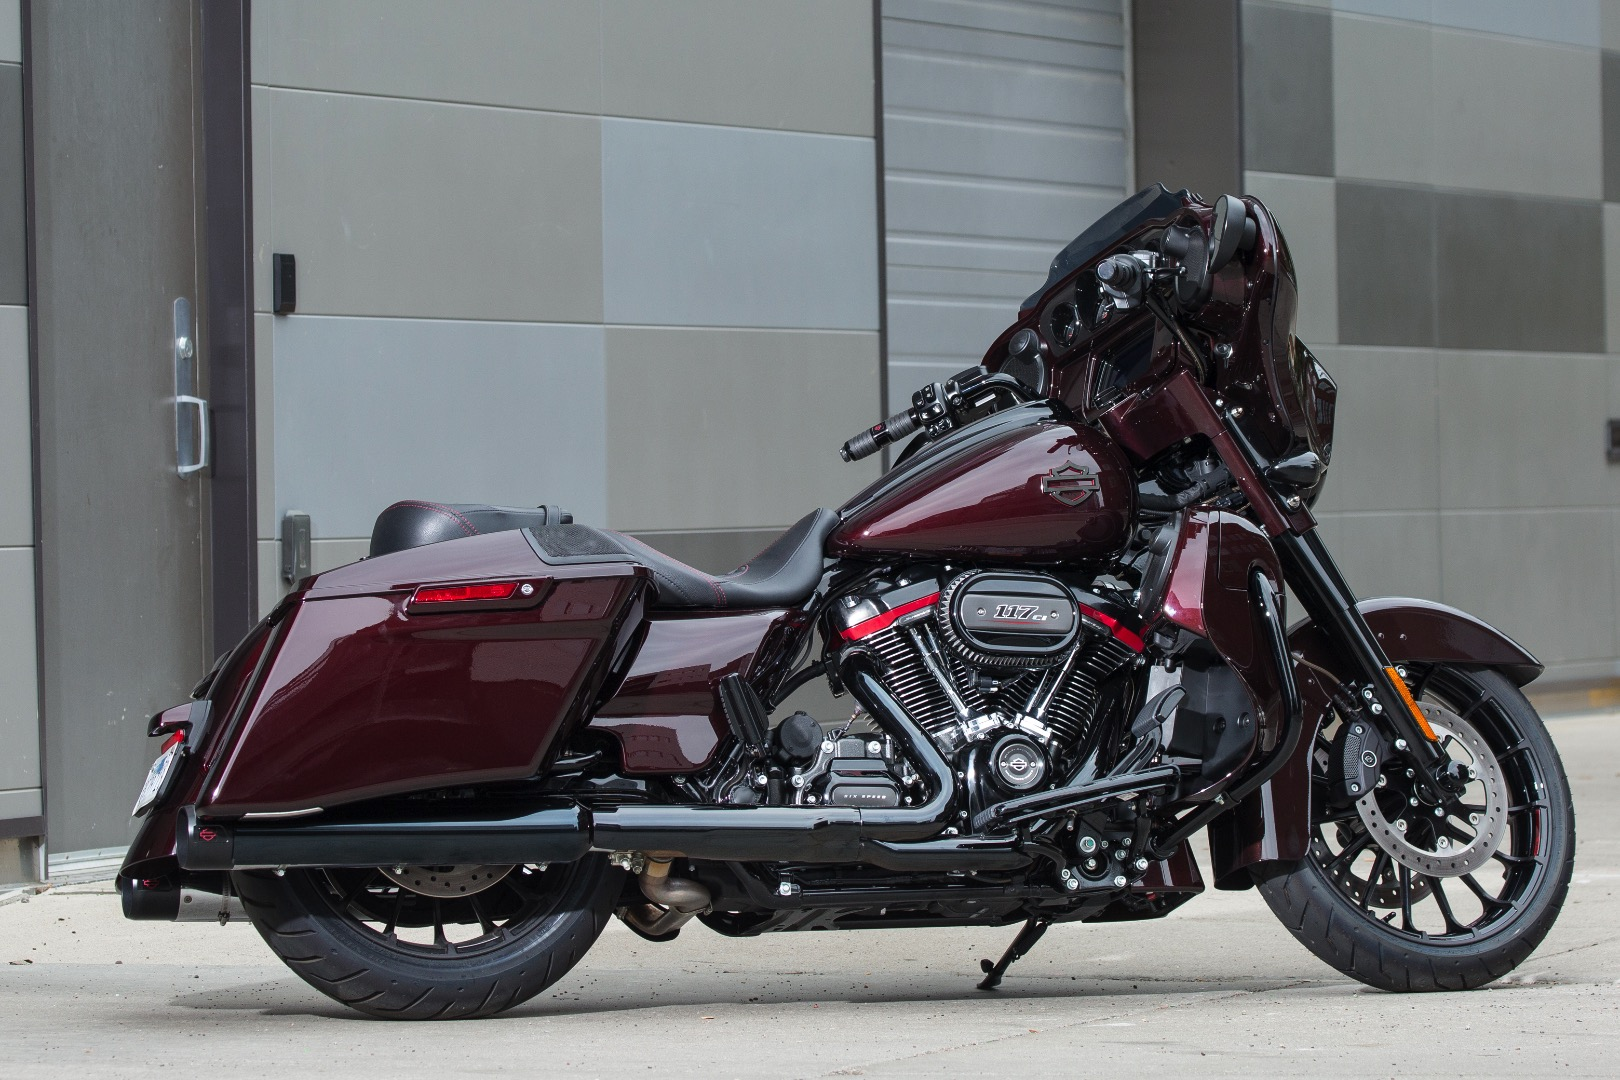 2019 Harley-Davidson CVO Street Glide Review (14 Fast Facts)